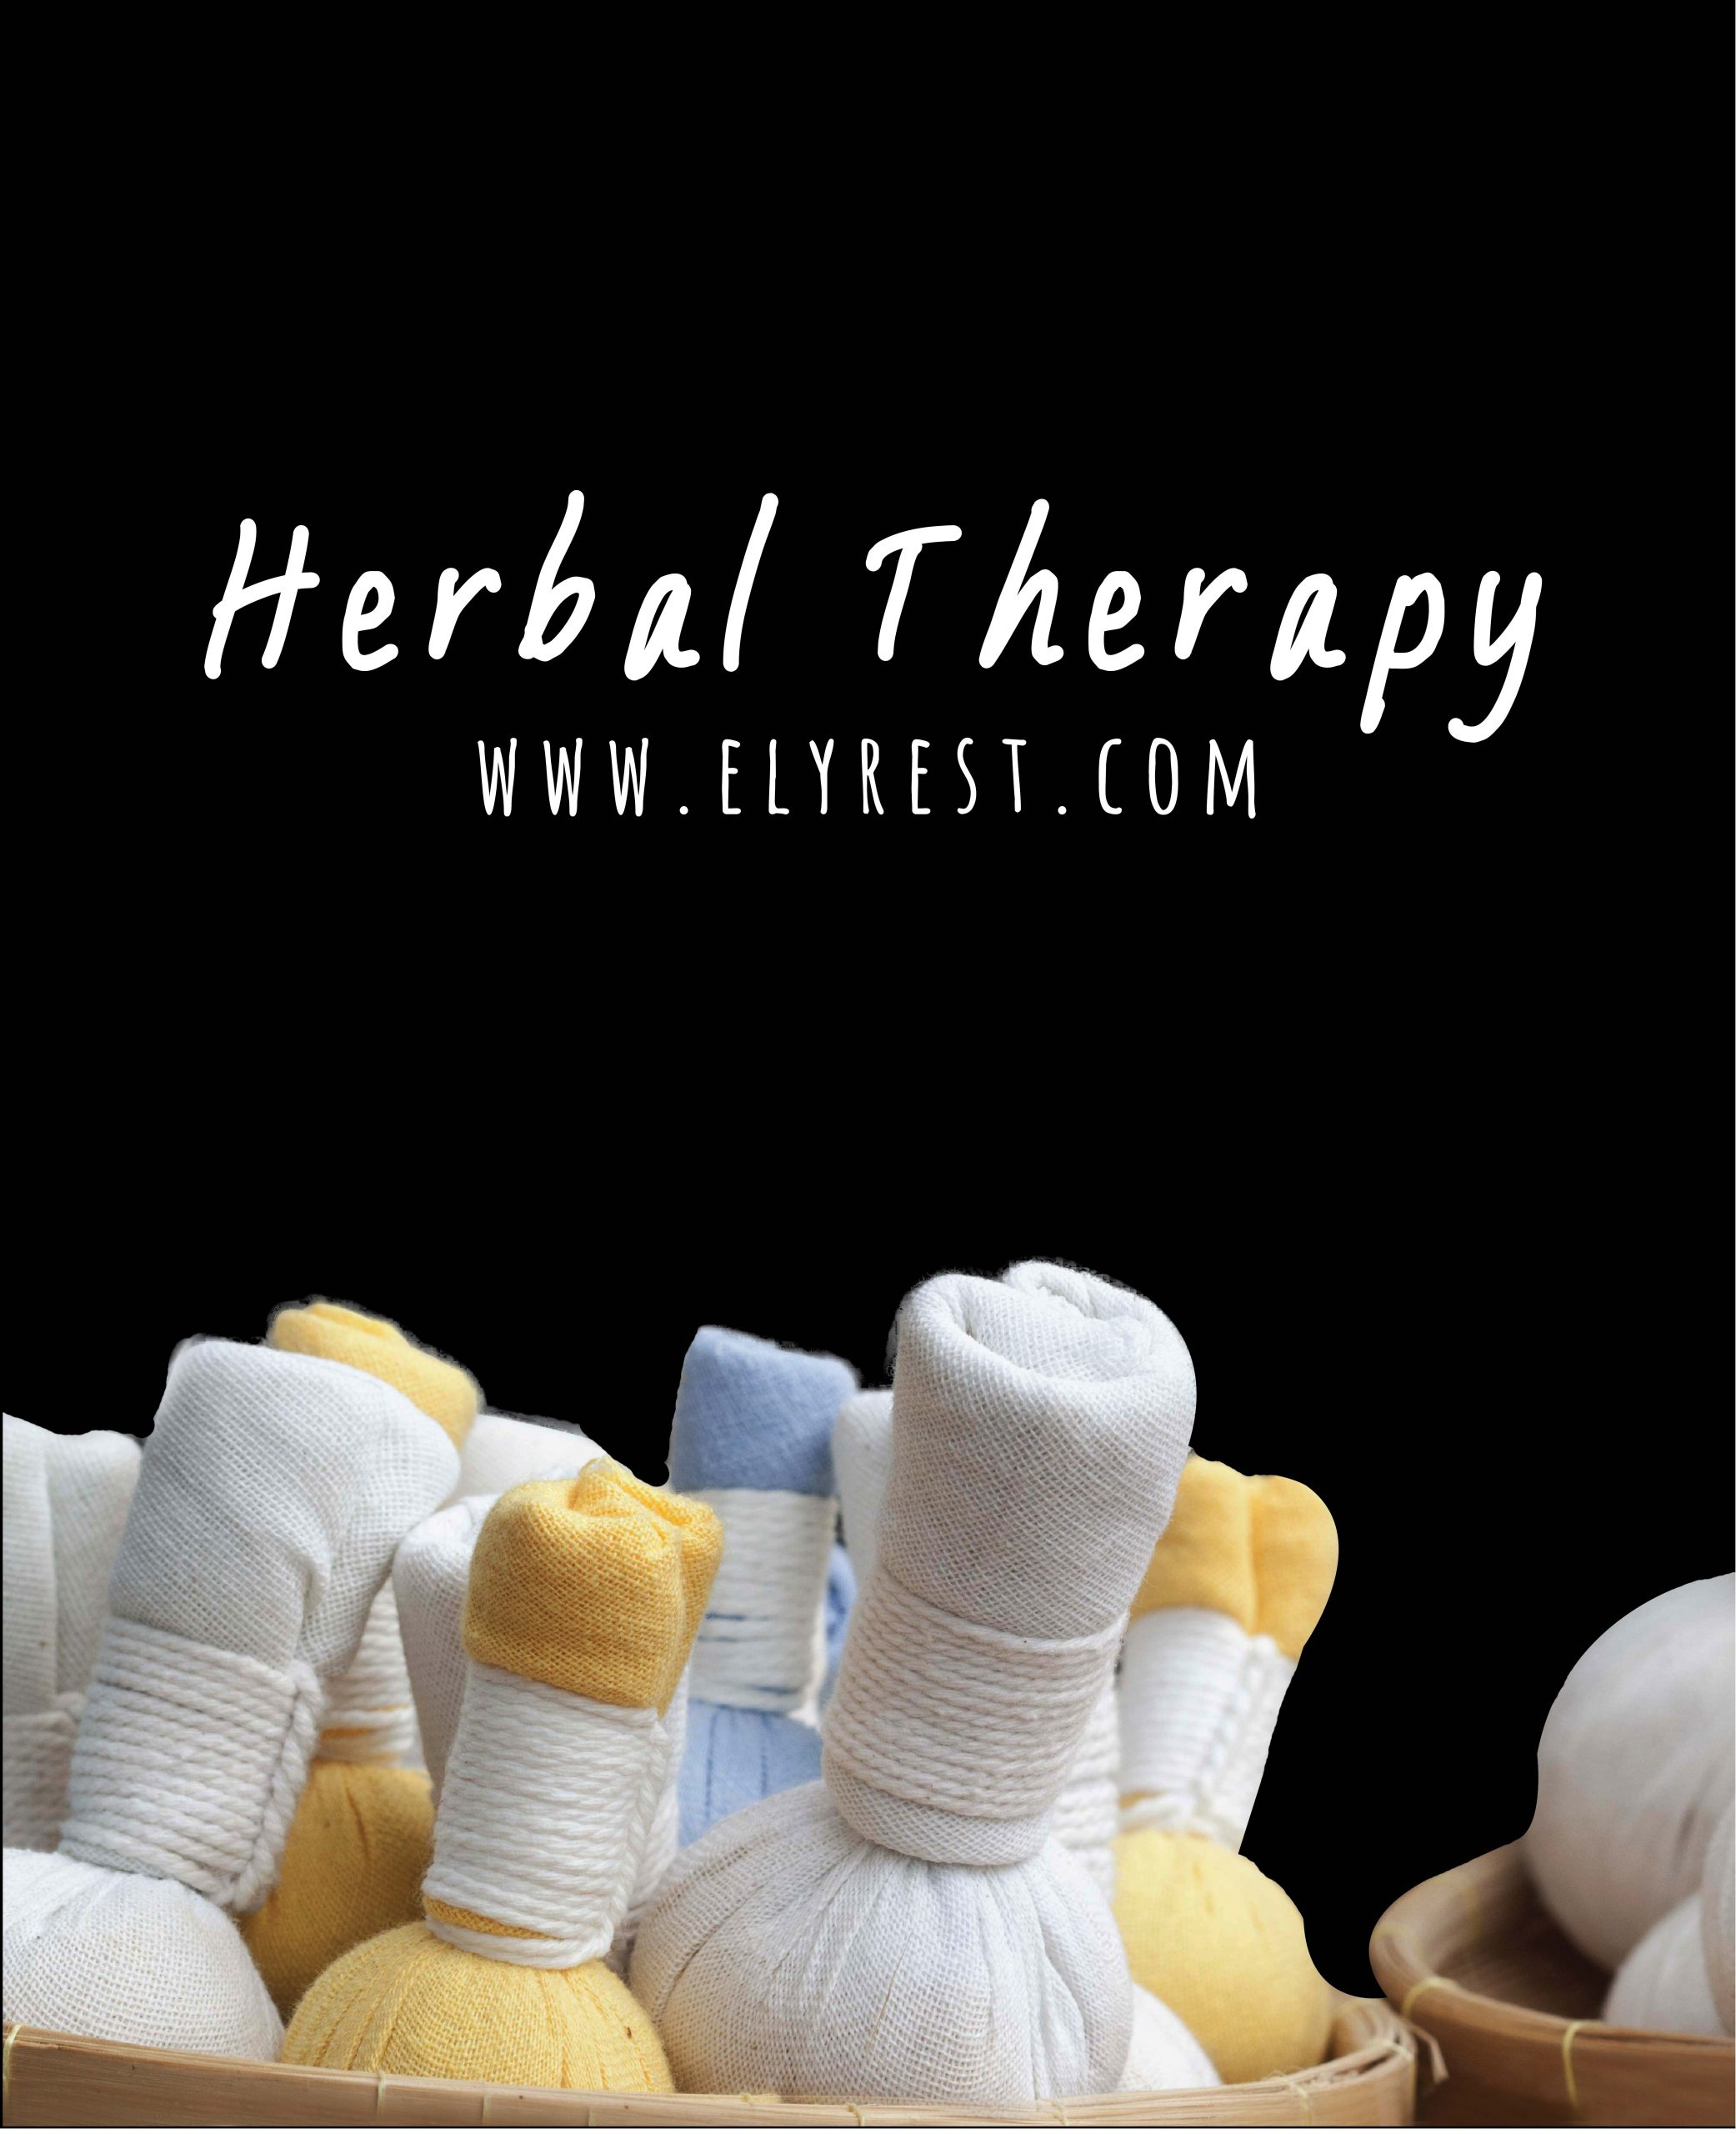 Elyrest by baanidin pop up Herbal Therapy